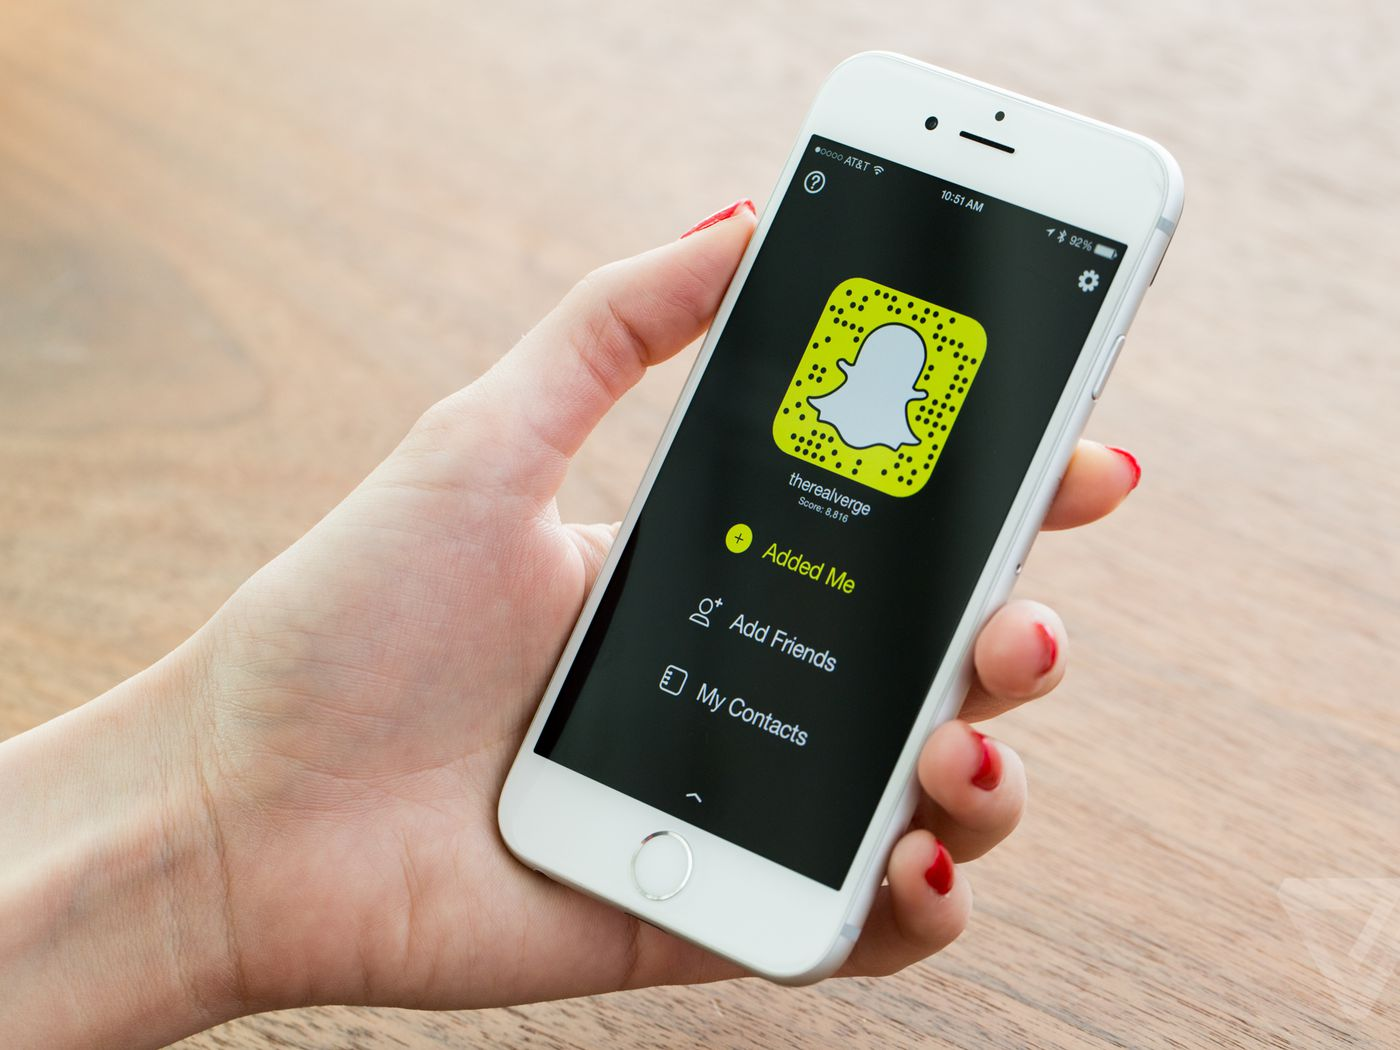 Snapchat stories posted from your camera roll will no longer